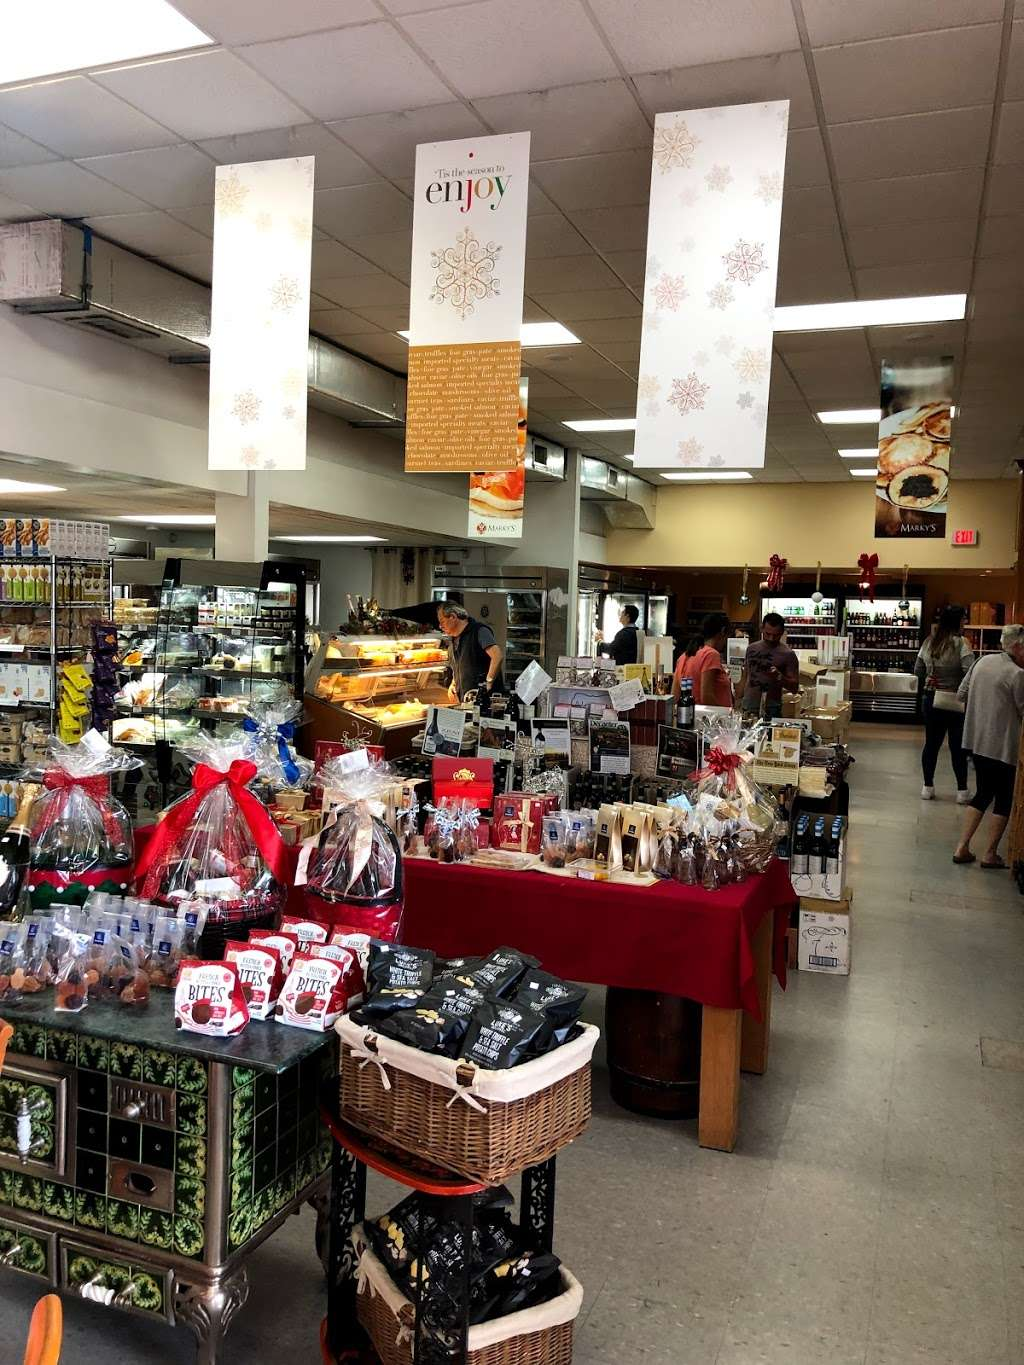 Markys Gourmet - store  | Photo 8 of 10 | Address: 687 NE 79th St, Miami, FL 33138, USA | Phone: (305) 758-2005